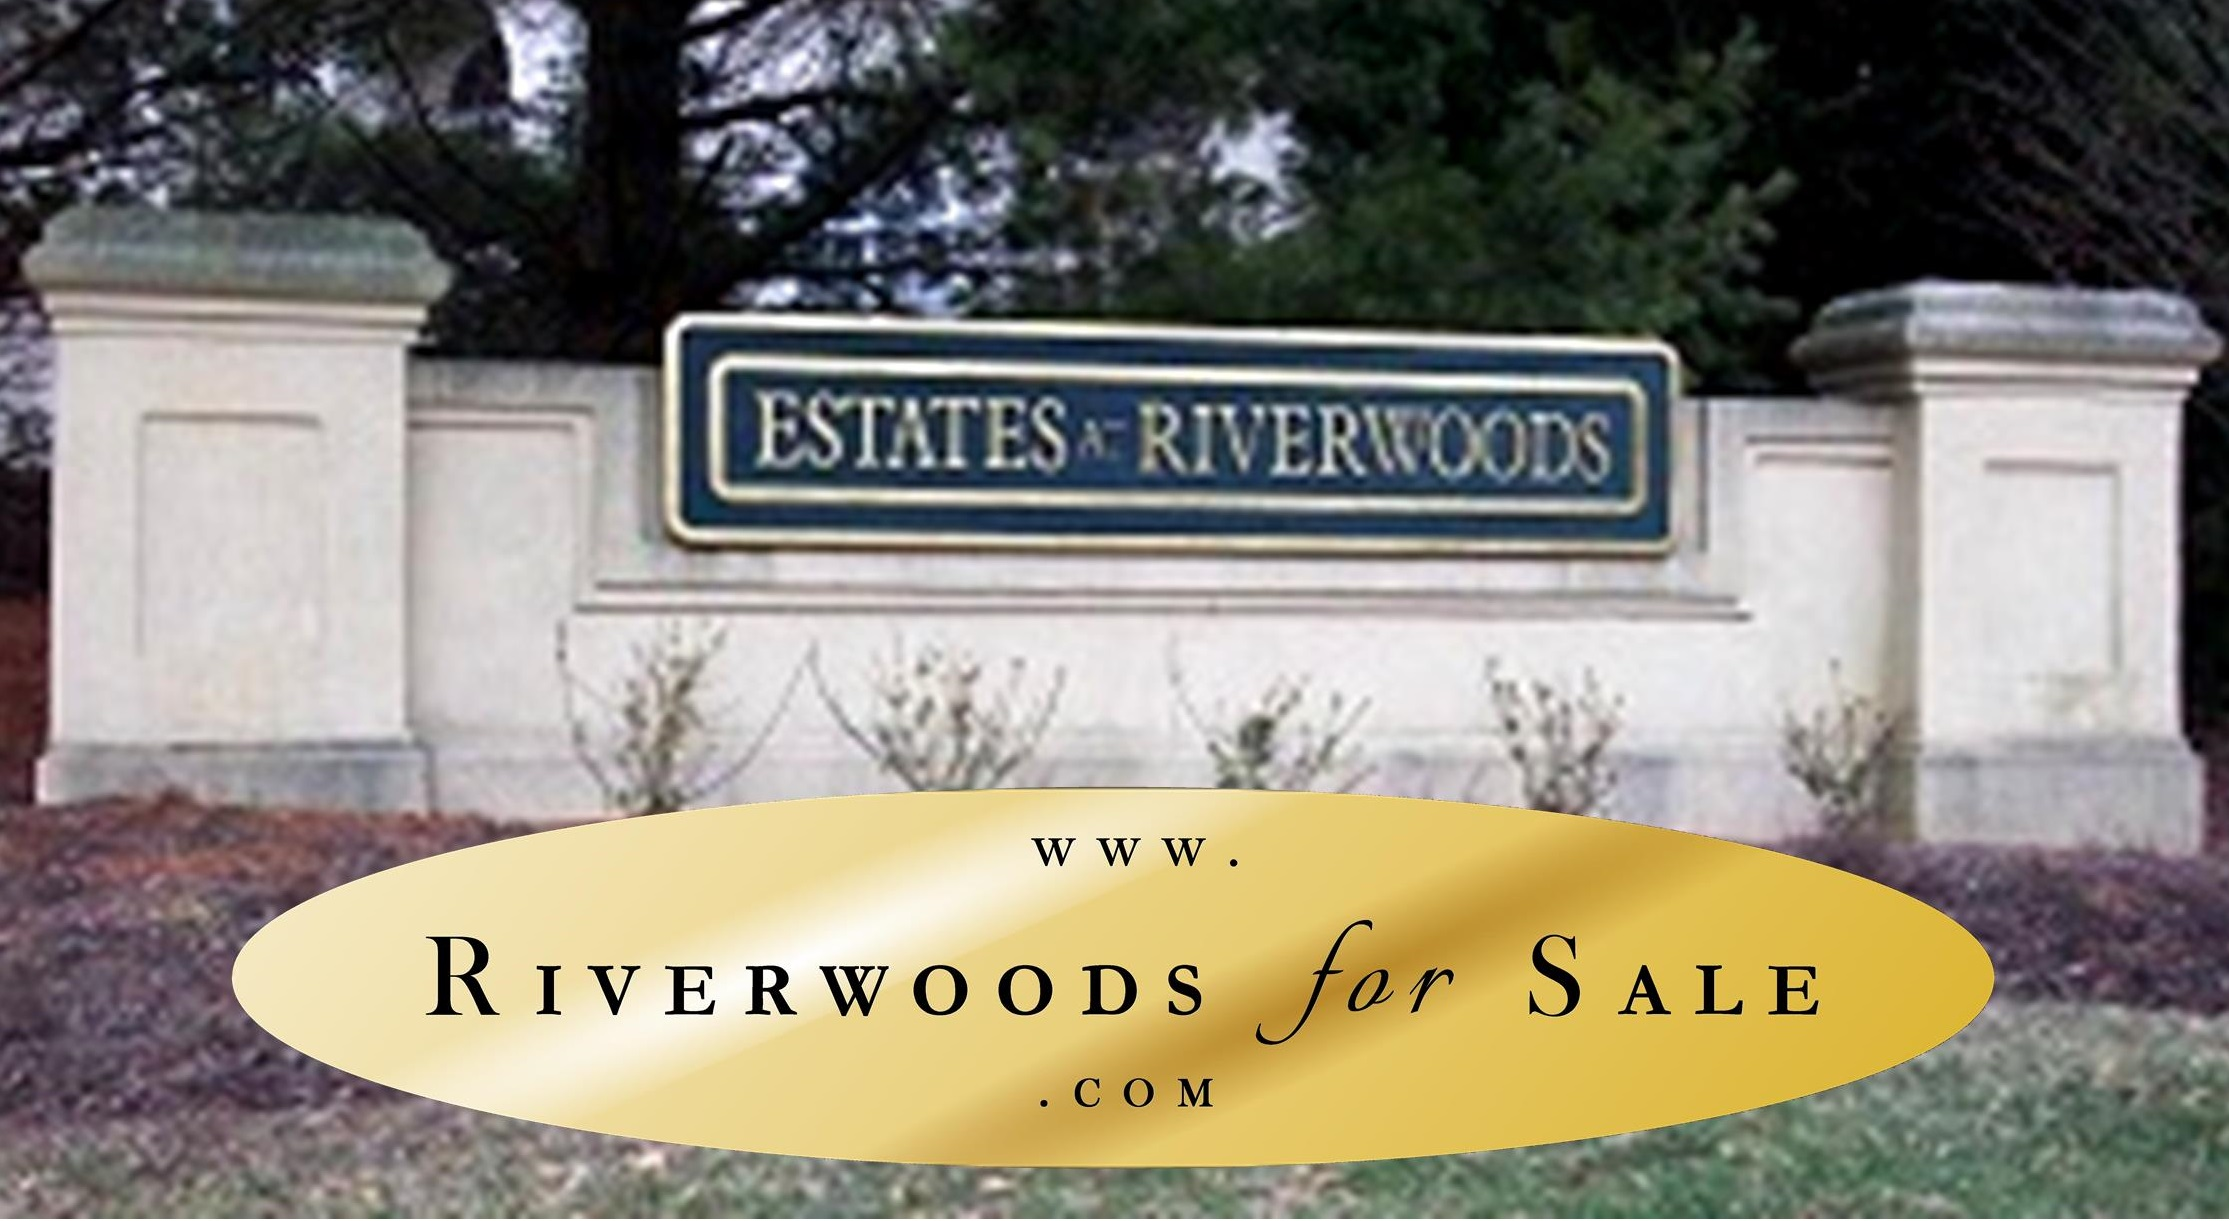 Estates at Riverwoods New Hope PA for Sale, #NewHope, #NewHopePA, @NewHope, New Hope Realtors, New Hope Realtor, #NewHopeRealtors, #NewHopeRealtor, Steve Walny, Weidel